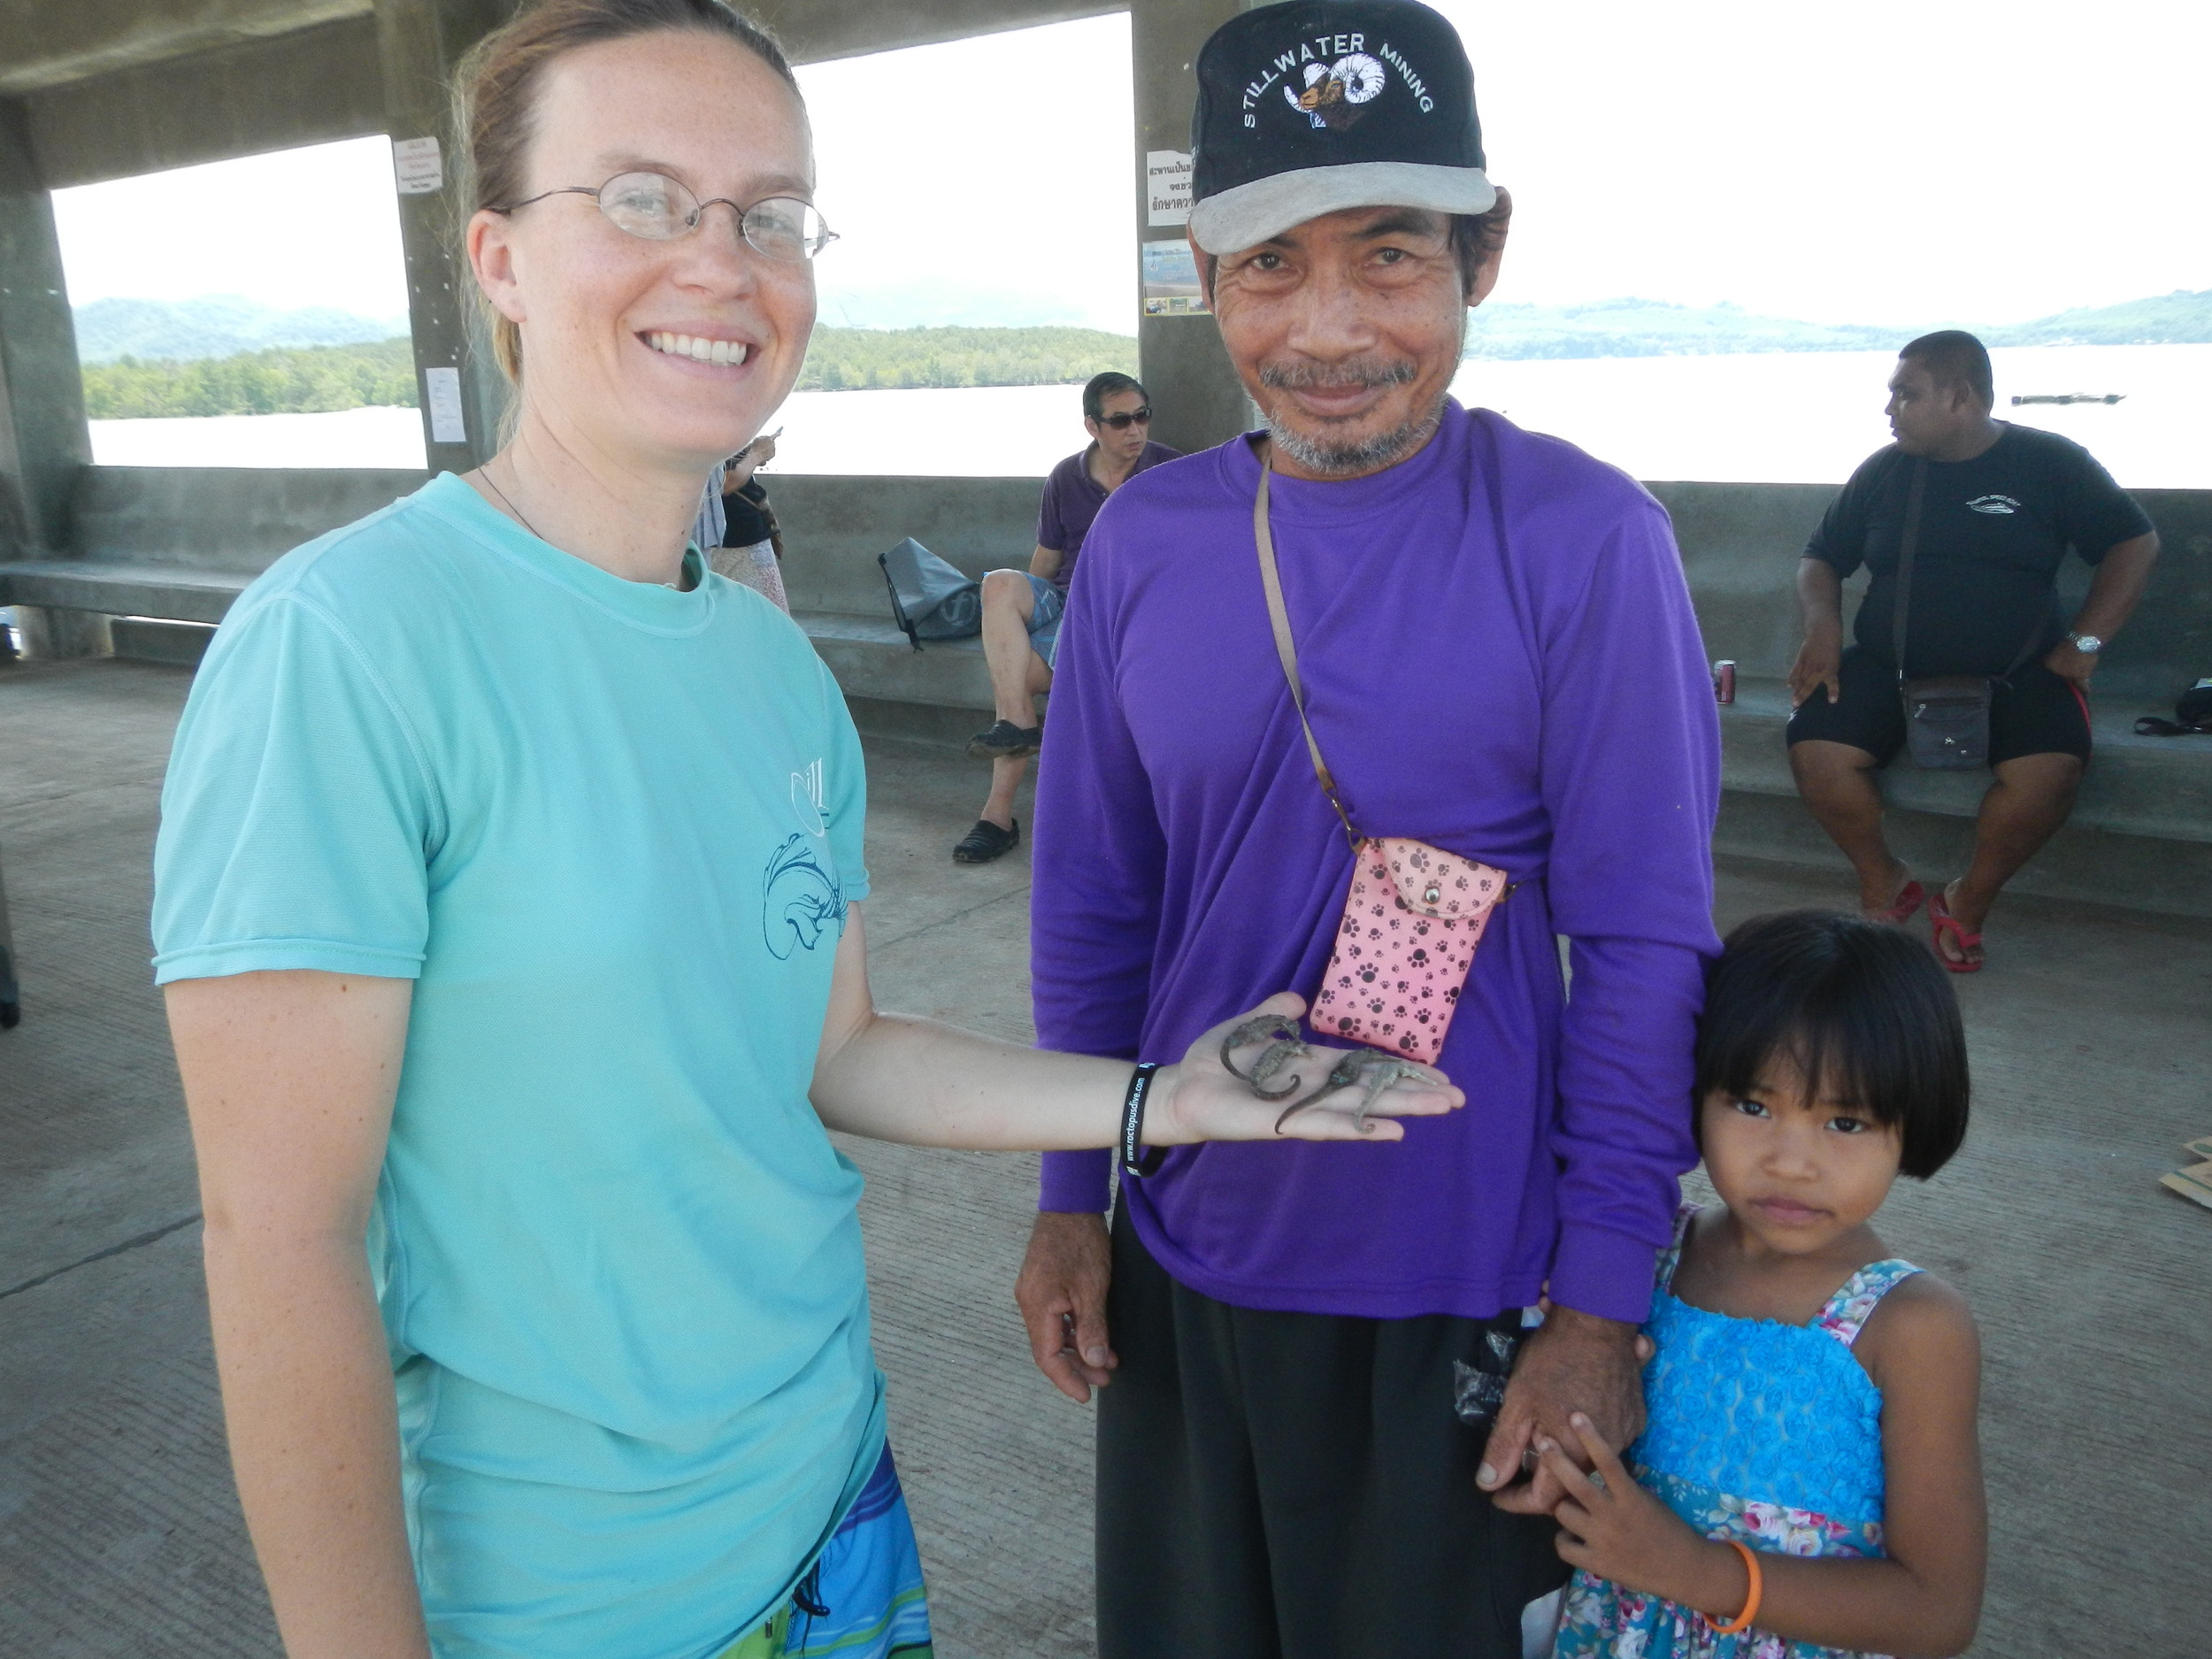 This fisher and his daughter sought us out after an interview to show us the seahorses they captured in the fishing net the next day. He proudly had four  Hippocampus trimaculatus  to show us from the sandy bottom near Koh Yao Noi where he sets his crab gillnet.